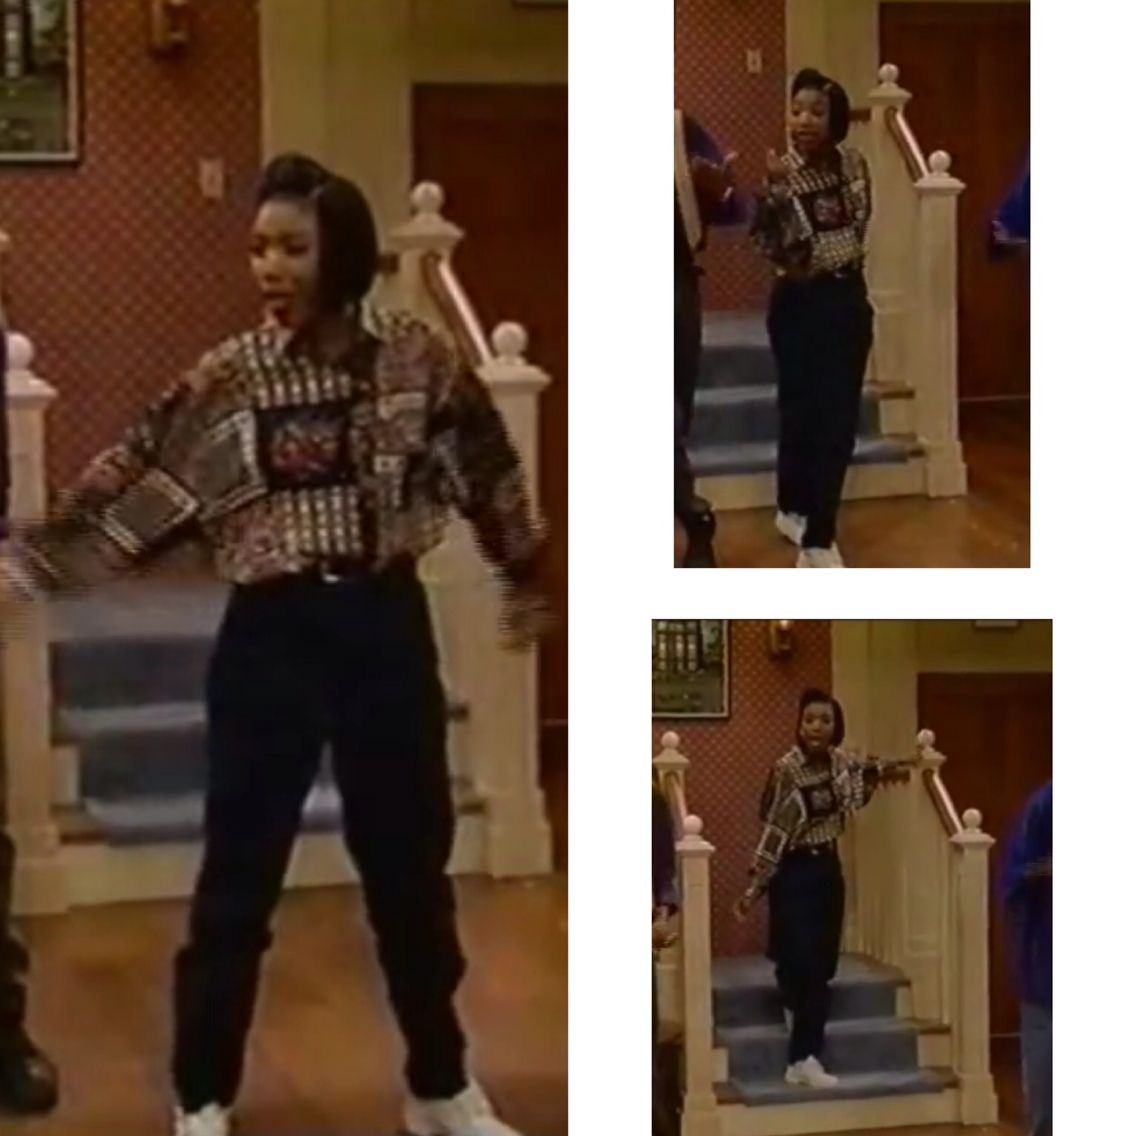 Brandy singing respect on thea (With images) | 90s fashion ...